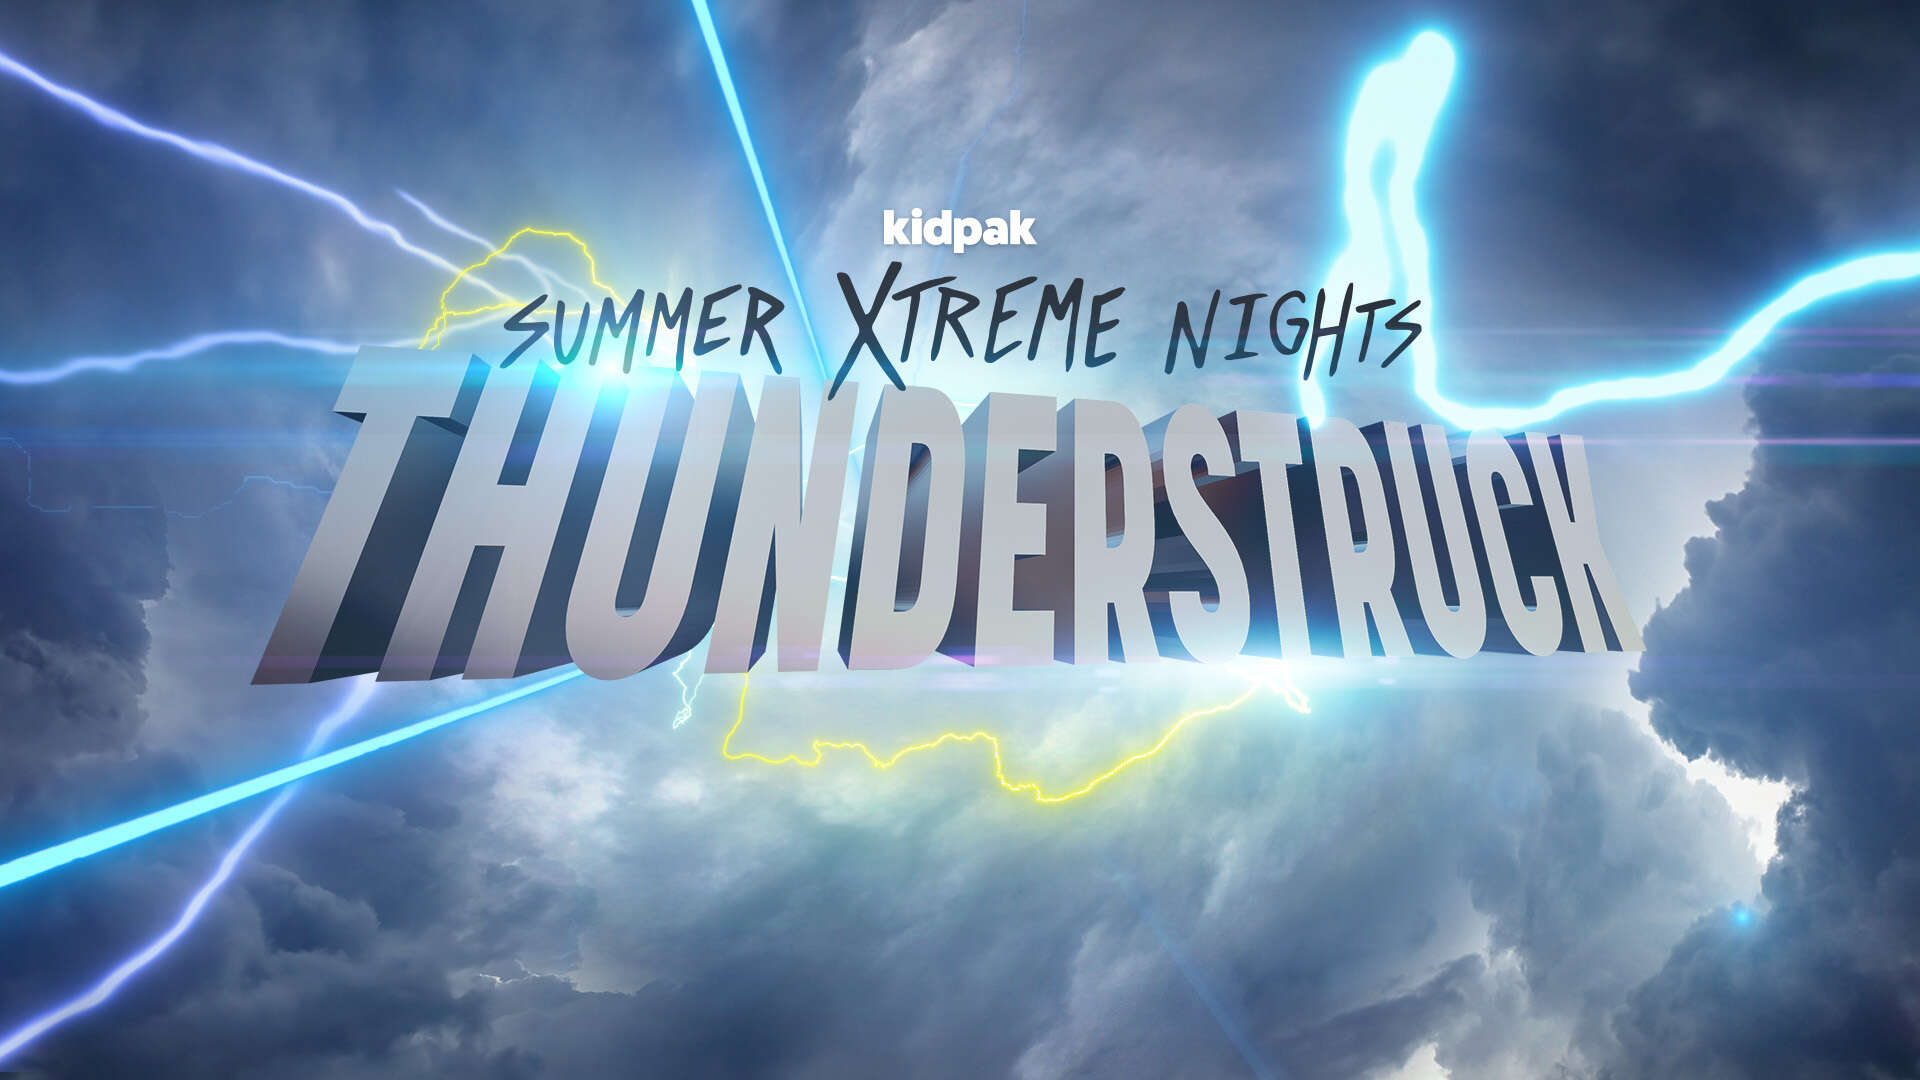 Summer Xtreme Nights Midtown at the Midtown campus